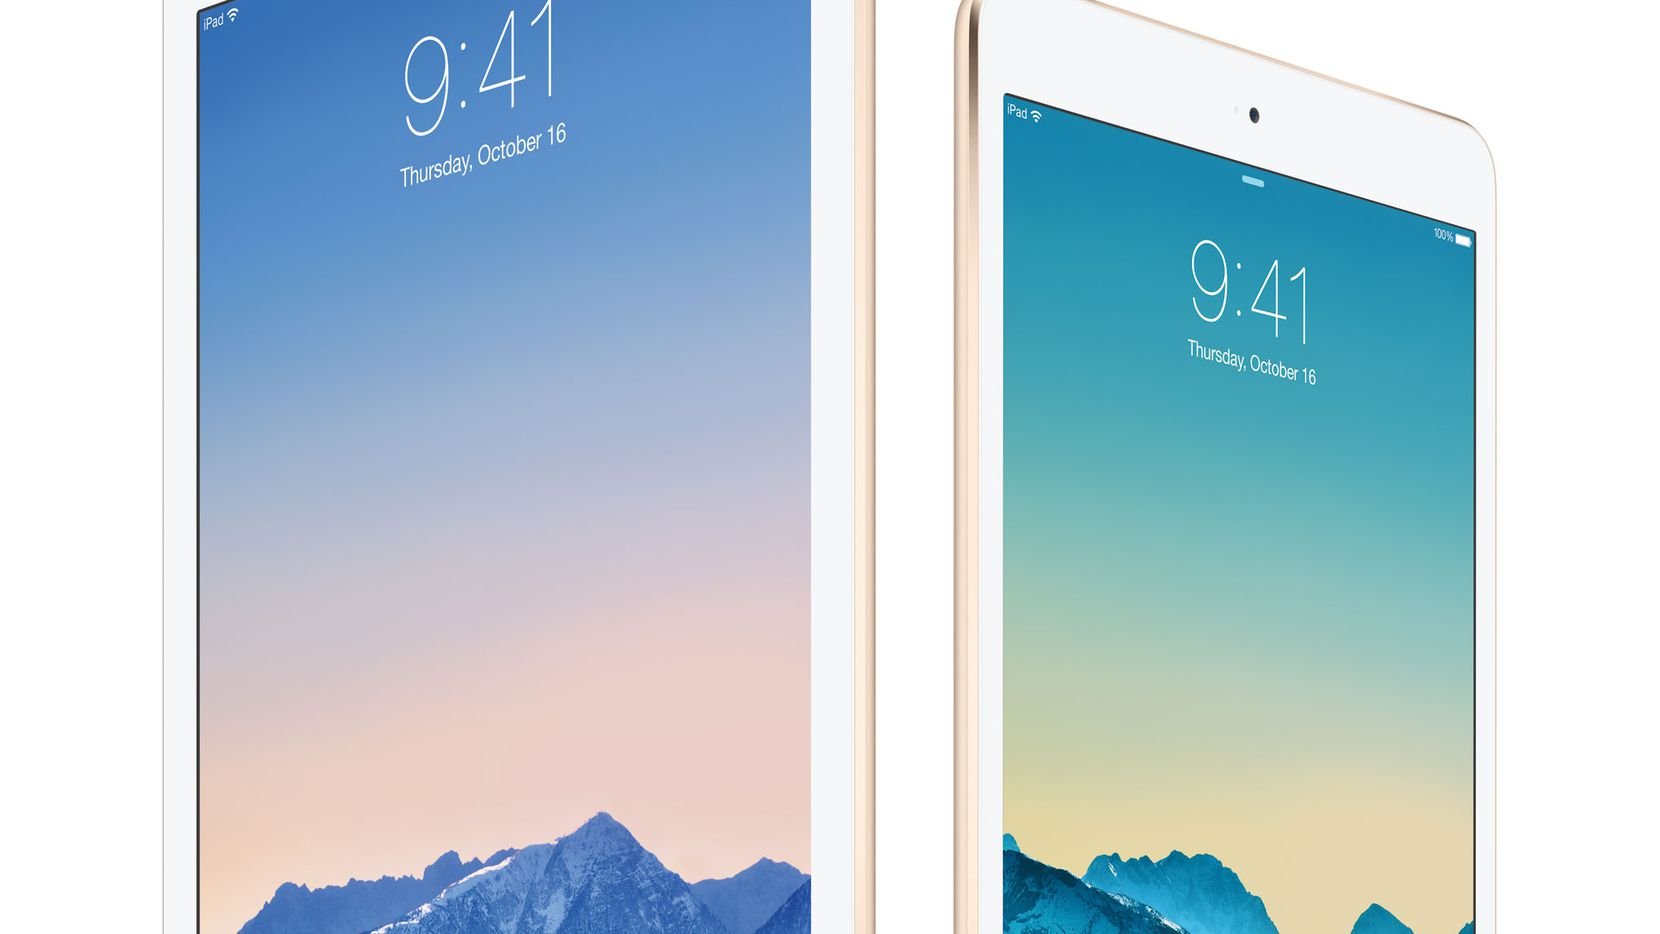 To get your Gmail contacts onto your iPad, export them to iCloud